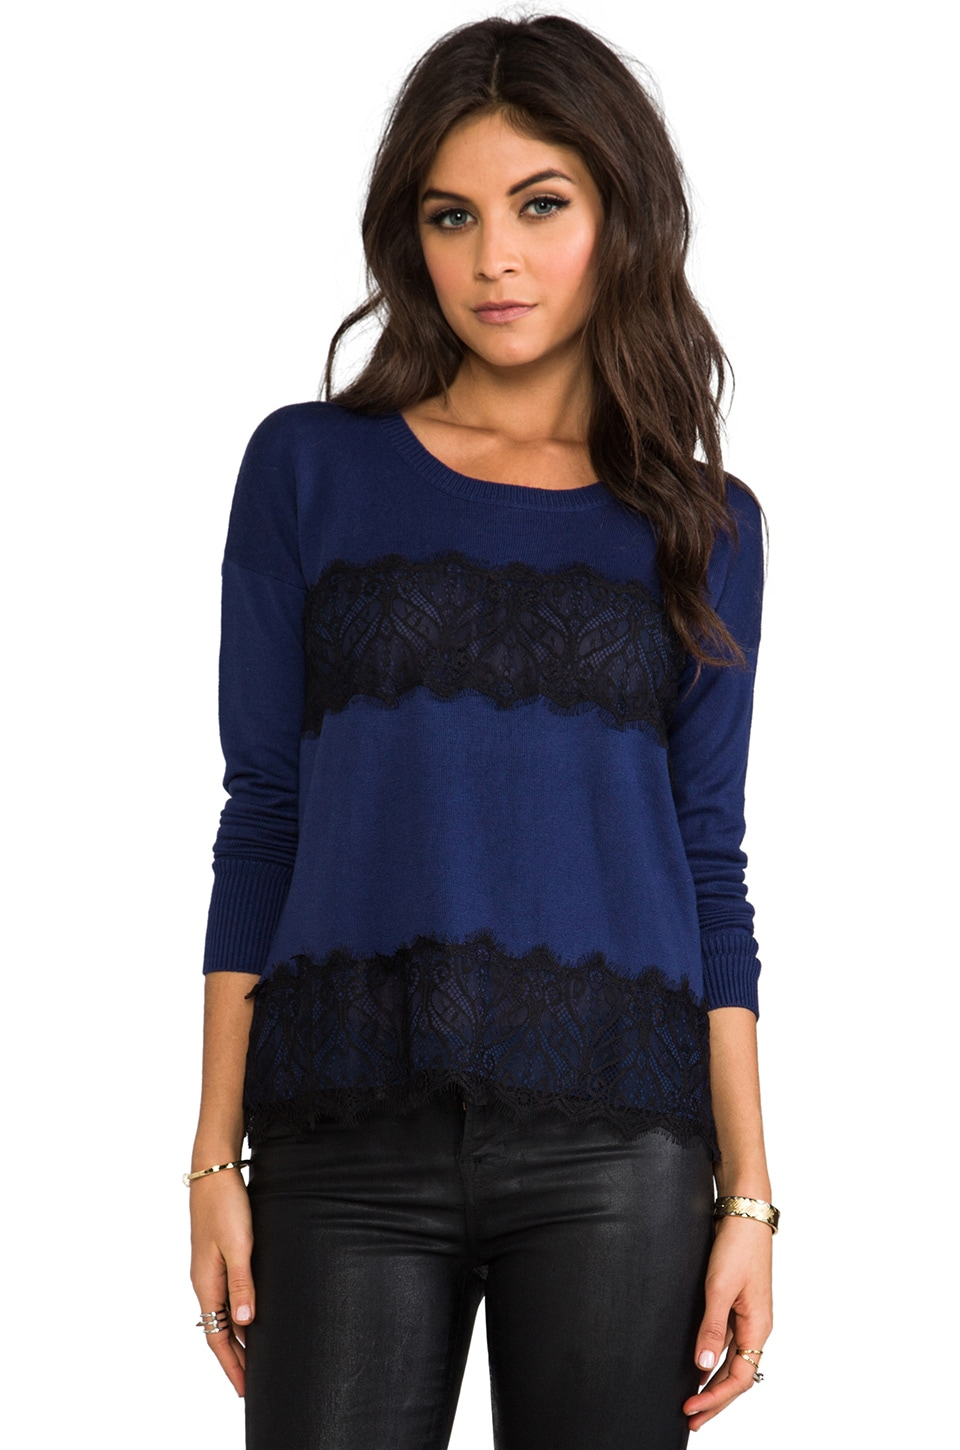 Central Park West Toulouse Pullover in Navy